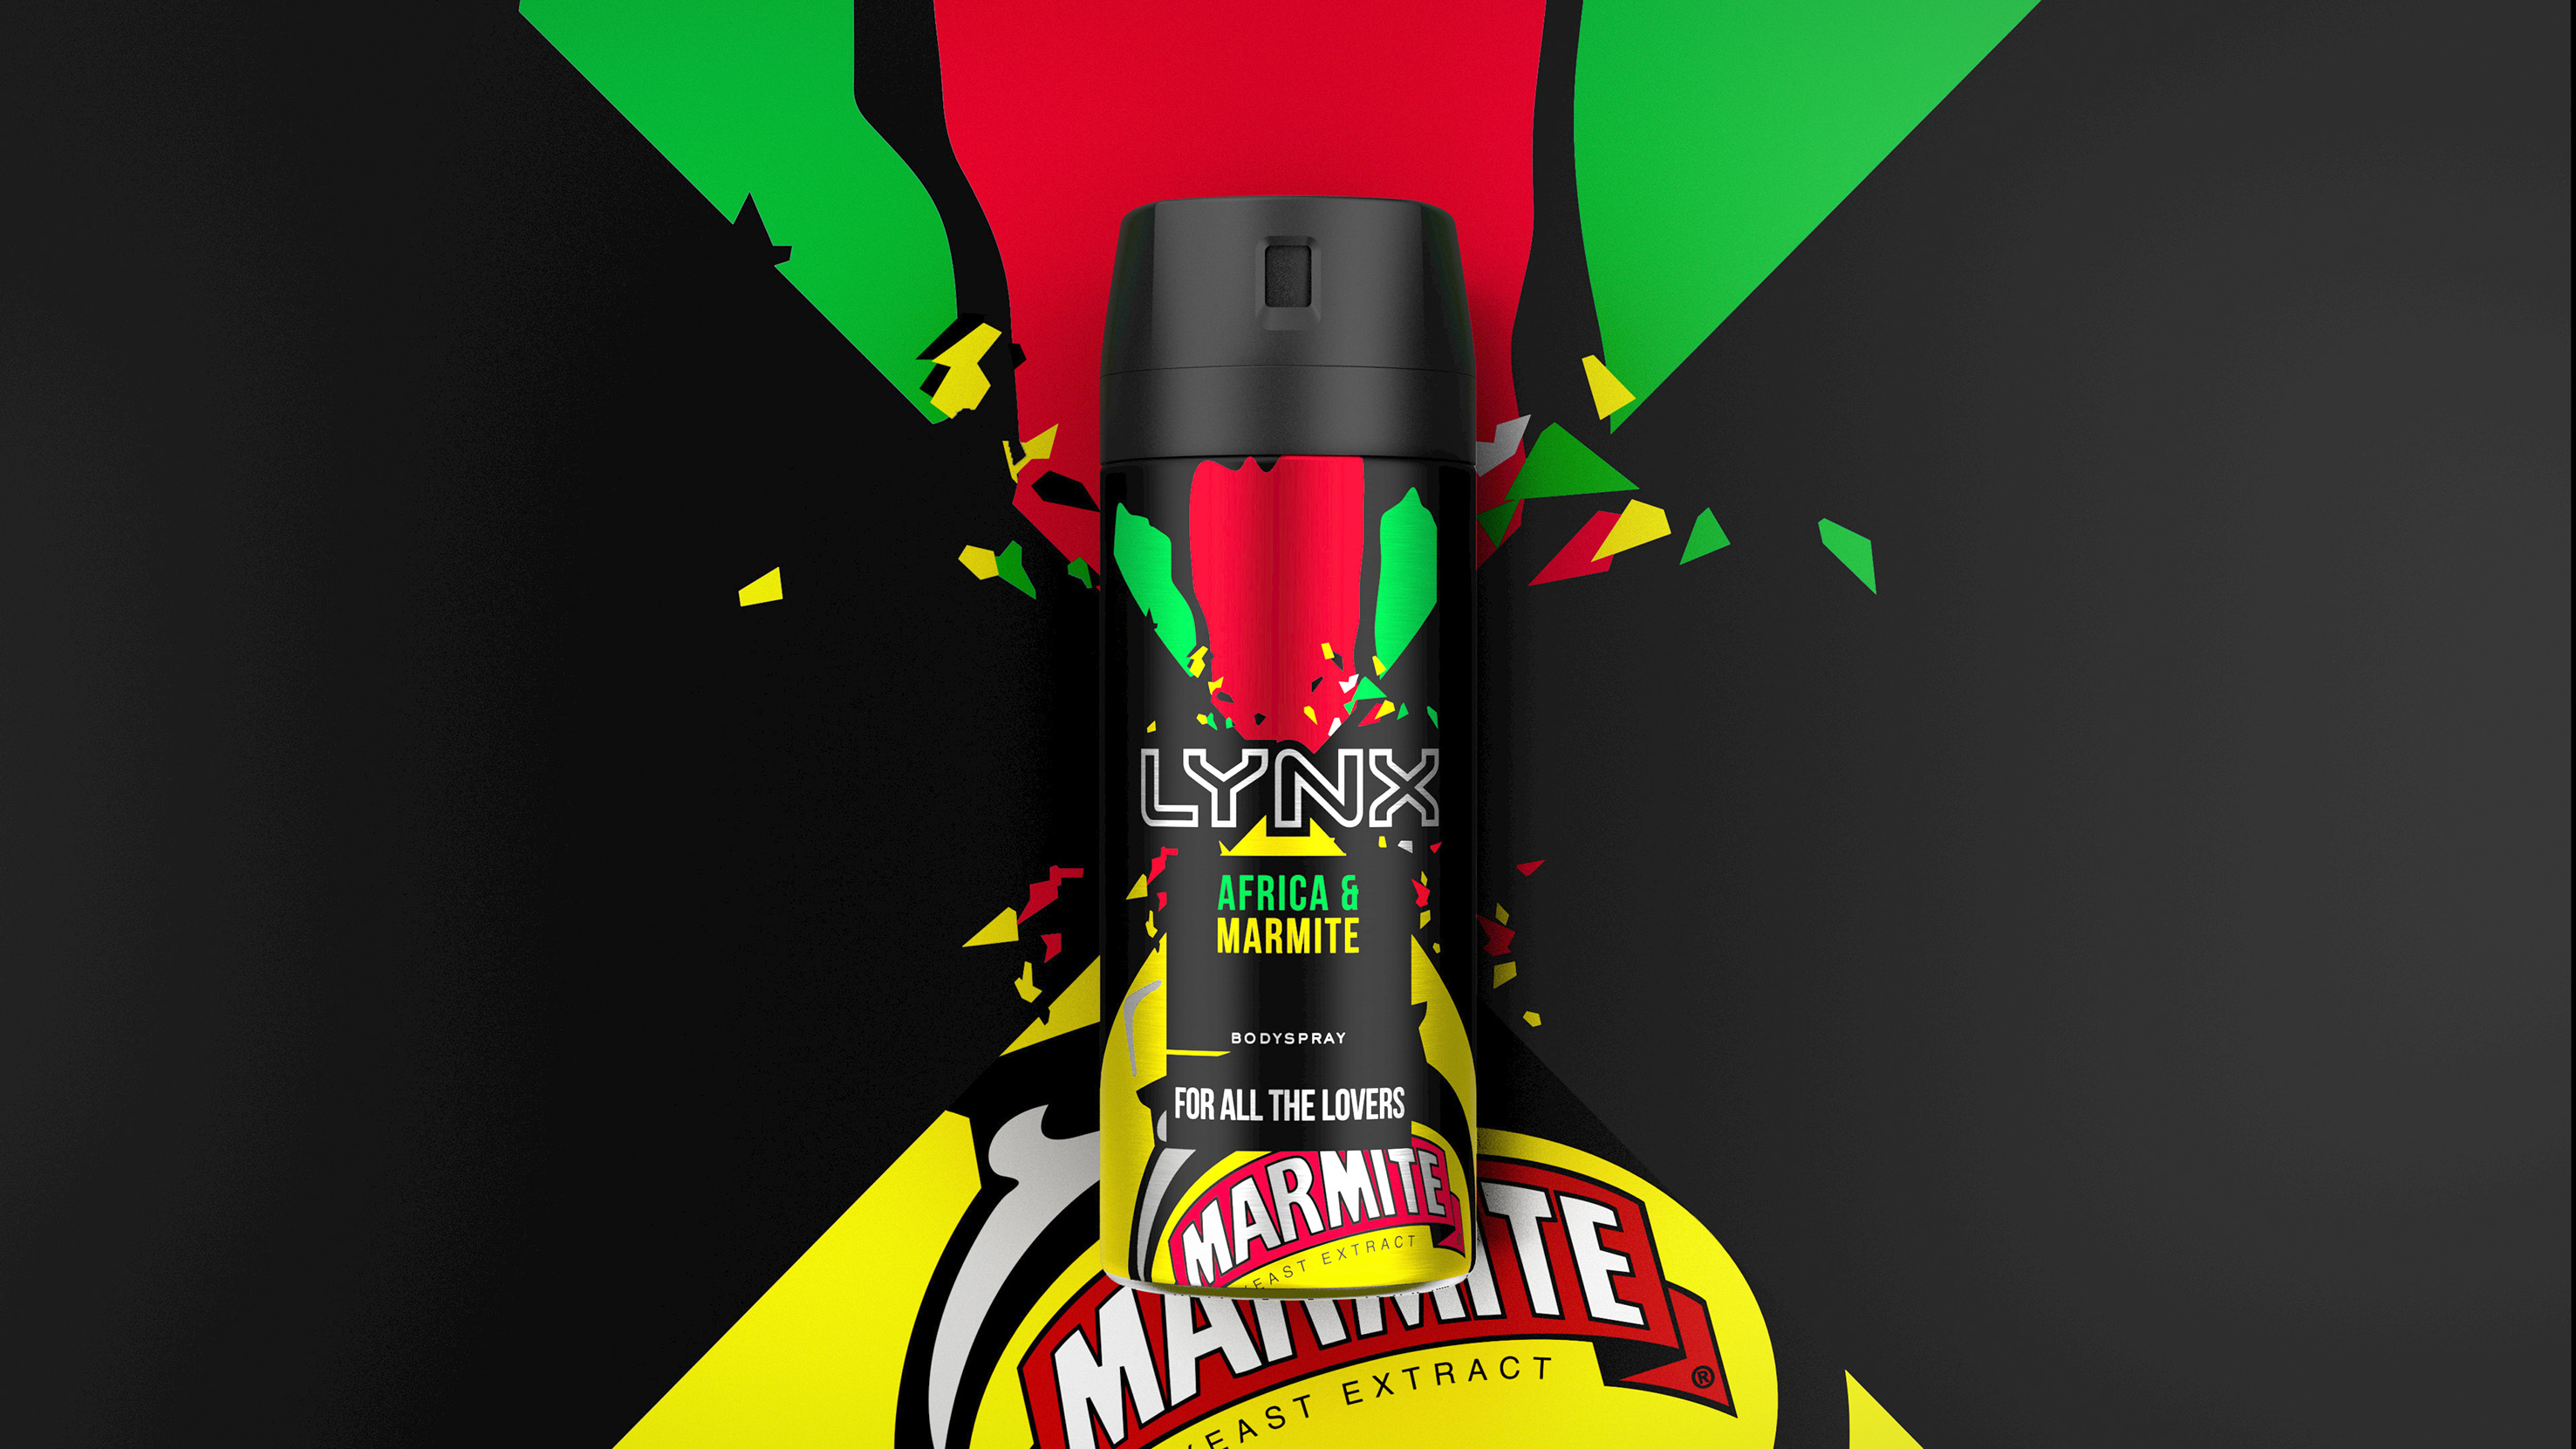 LYNX Africa Collides with Marmite for Bold New Range by PB Creative